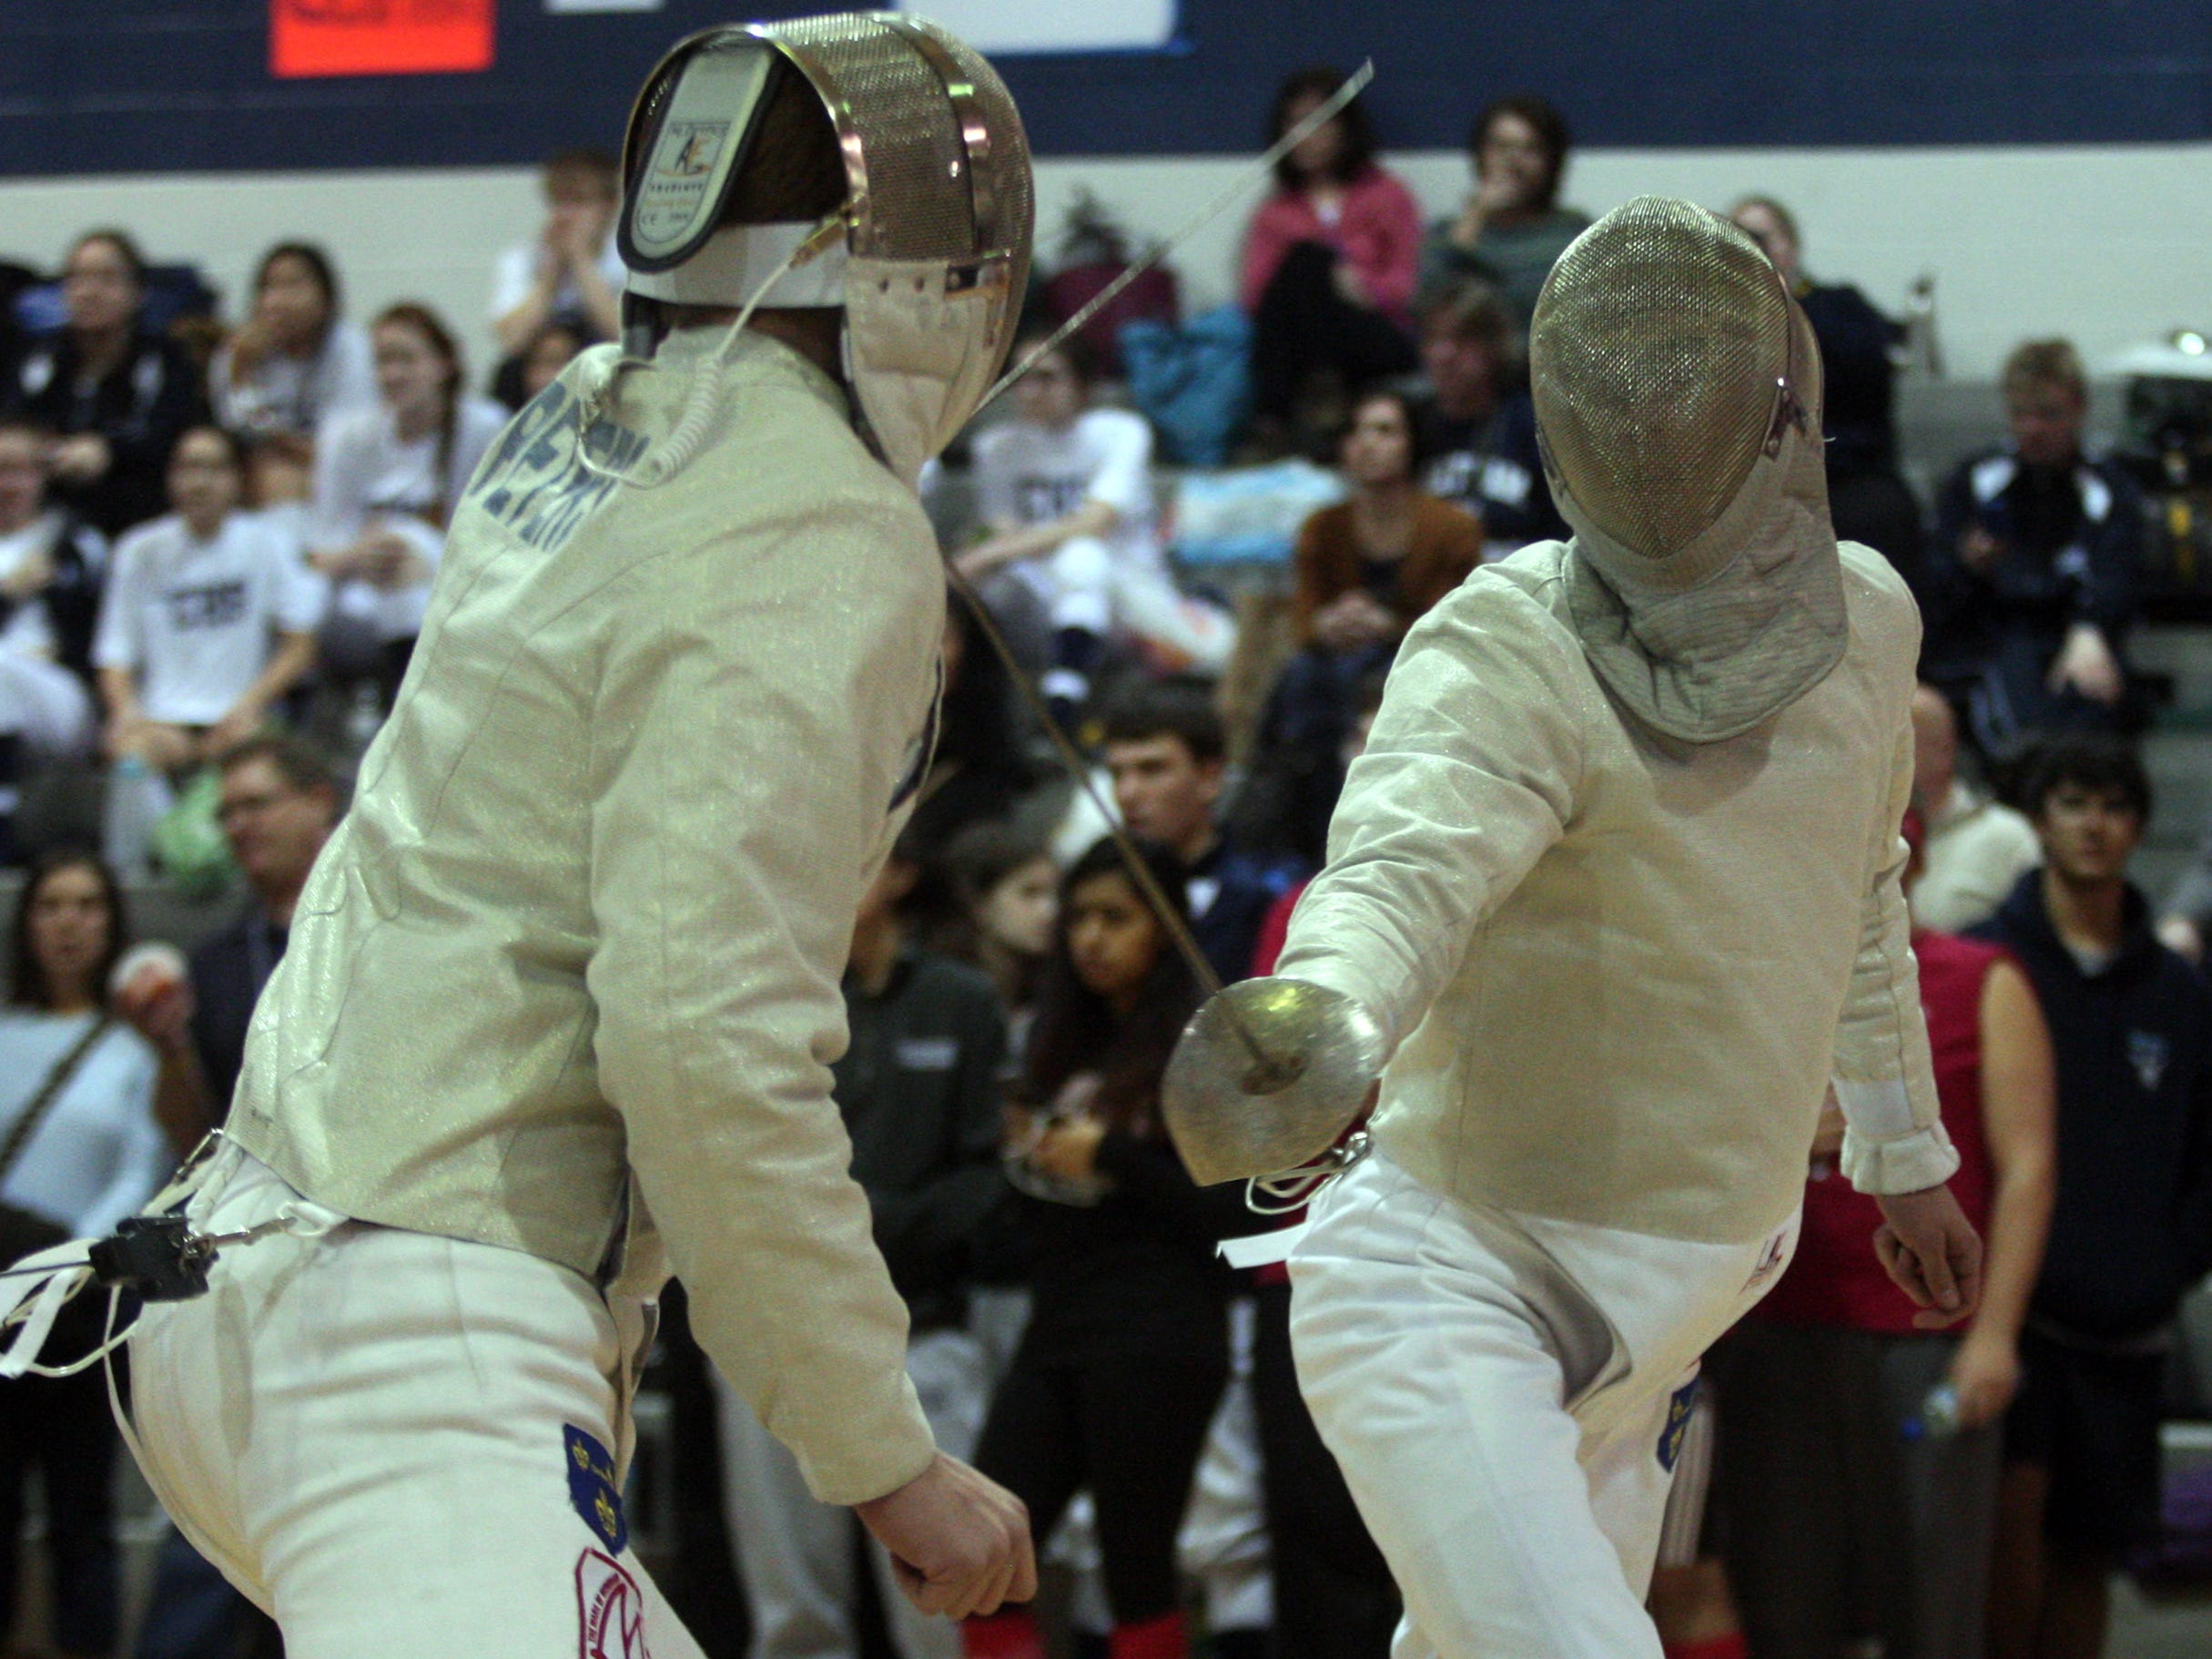 Mendham's Matt Peters (left) and Andrew Creager during the individual sabre finals of the Morris County Fencing Tournament on Jan. 17 at Randolph.